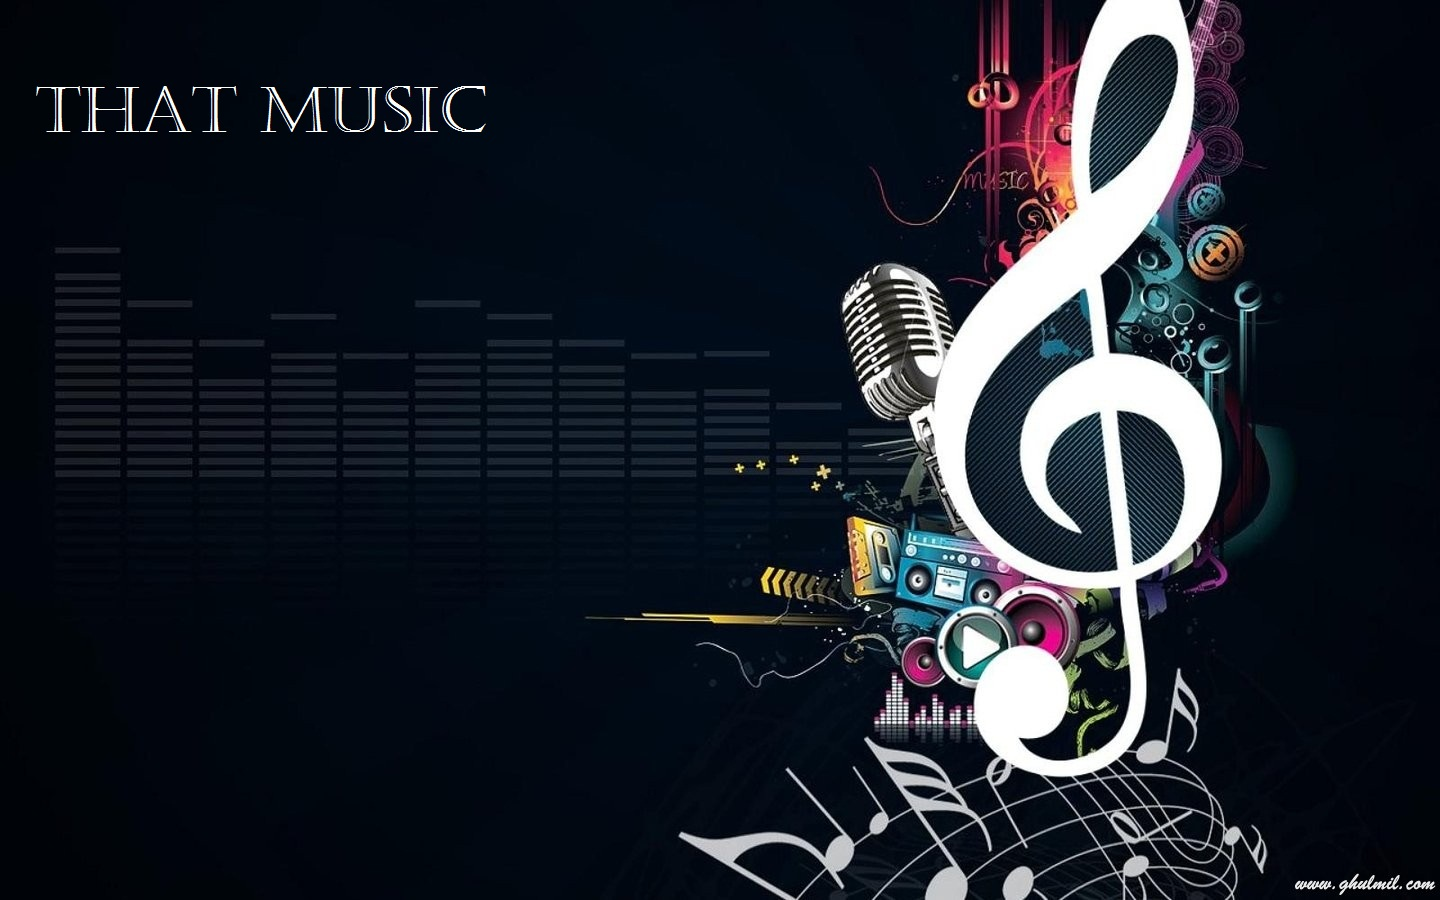 http://4.bp.blogspot.com/-4y1eLkeIkTk/T8wVgviyZhI/AAAAAAAAAEE/M07y9kpD7iA/s1600/beautiful-sign-of-music-desktopp-wallpaper.jpg